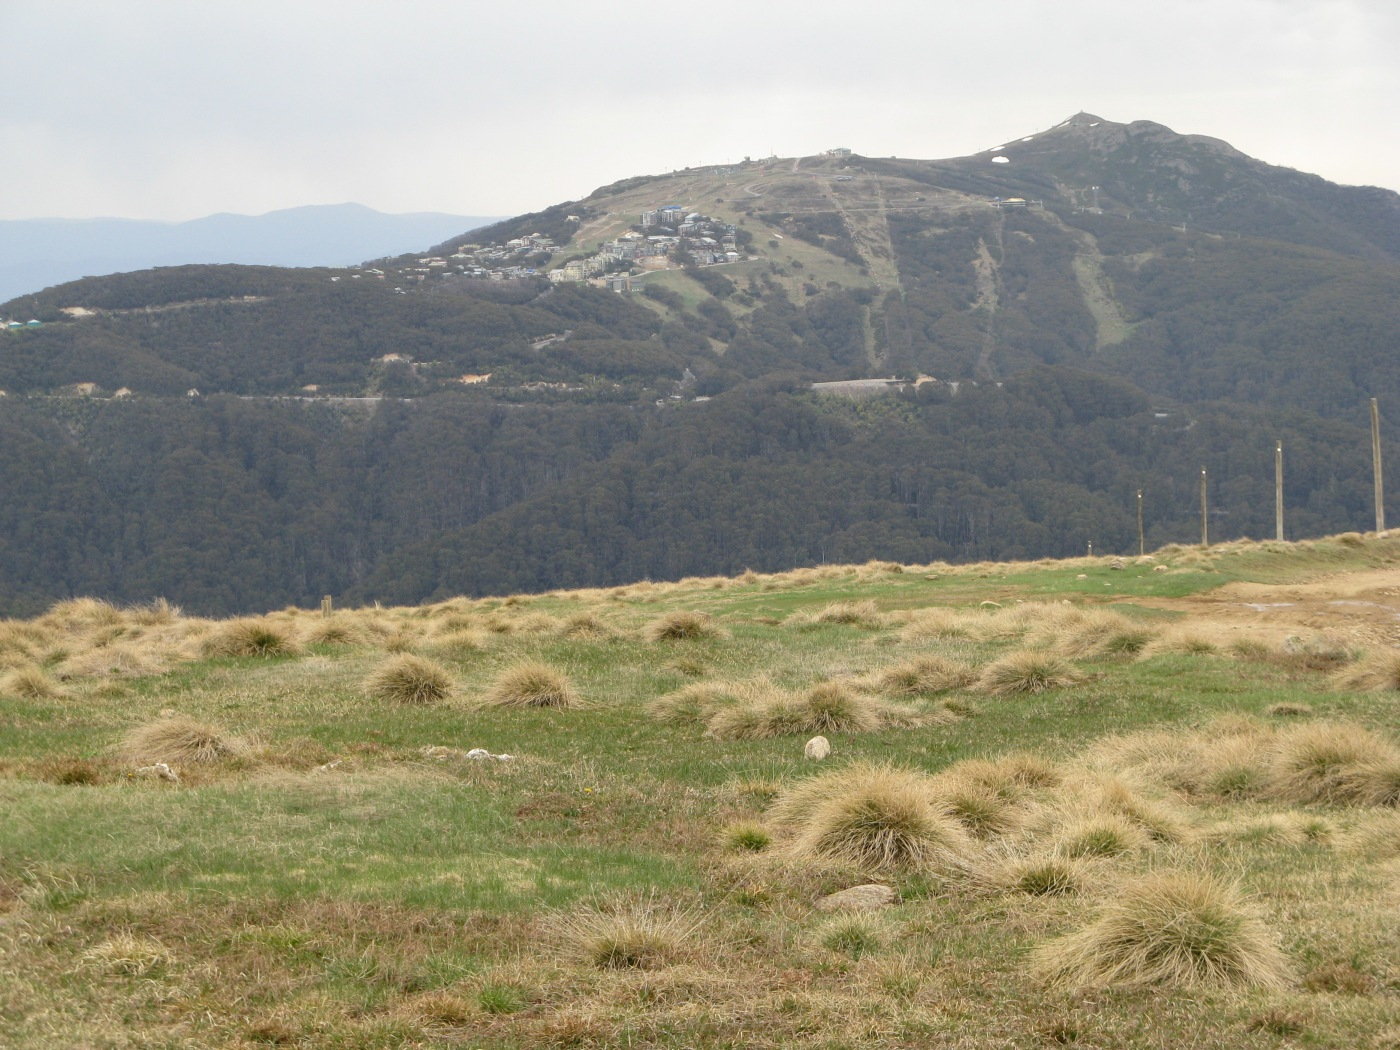 Mt Buller is already over developed. Is the road part of a plan to see similar development on Mt Stirling?